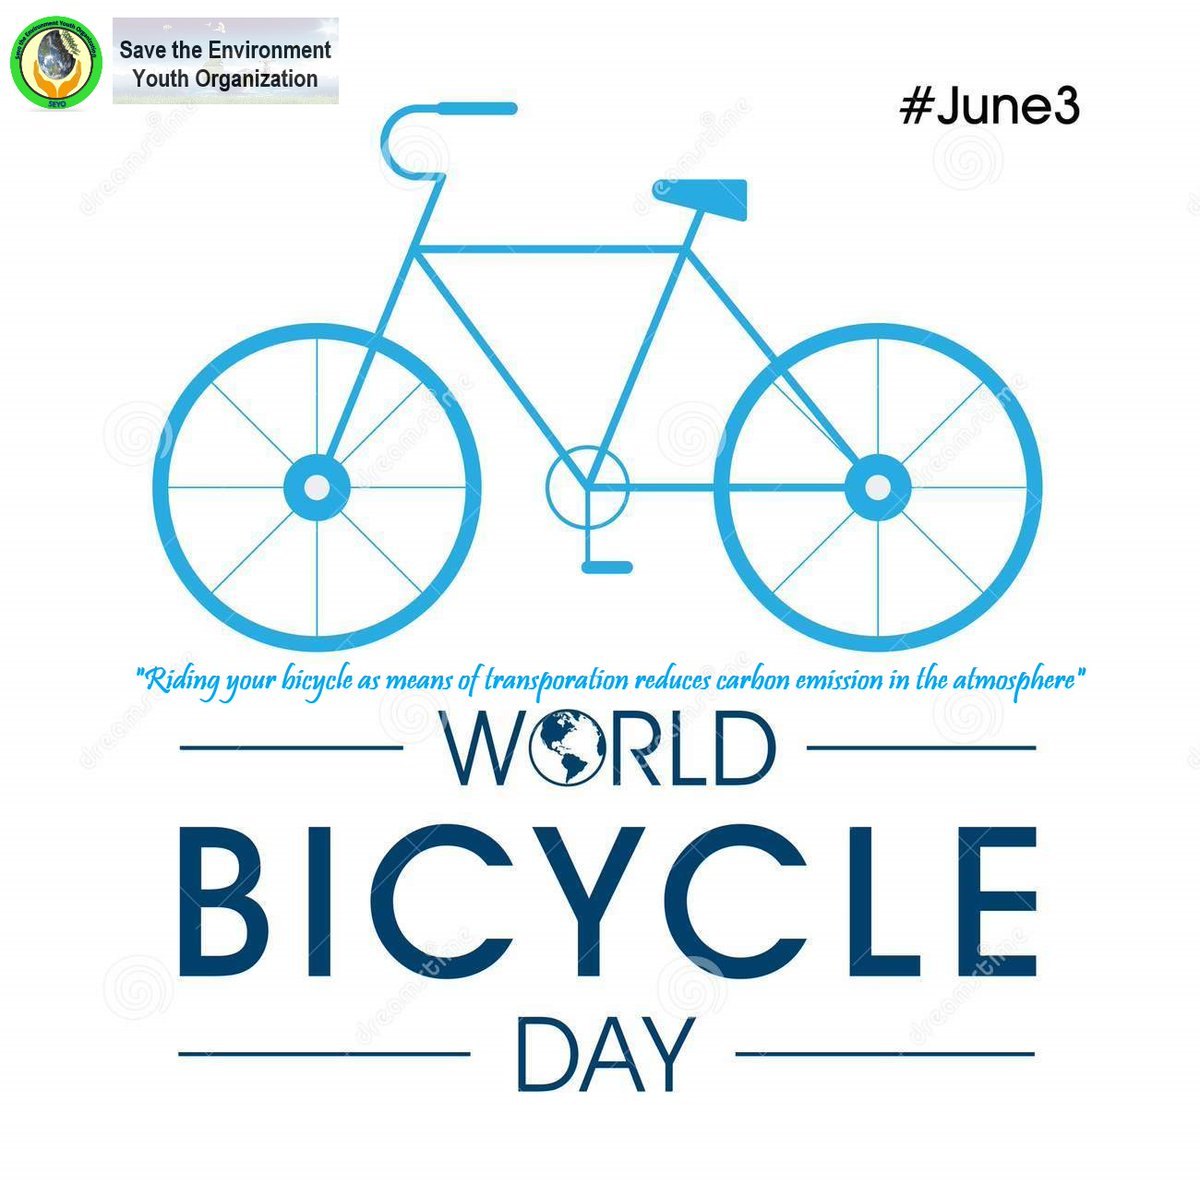 "Today is #WorldBicycleDay !  ""Riding bicycle as means of transportation reduces Carbon accumulation in the Atmosphere that causes greenhouse formation. It is a great physical activity too, It's beneficial to our environment and our health.""  So let's ride our bicycles! <br>http://pic.twitter.com/XBSA9nxQeb"